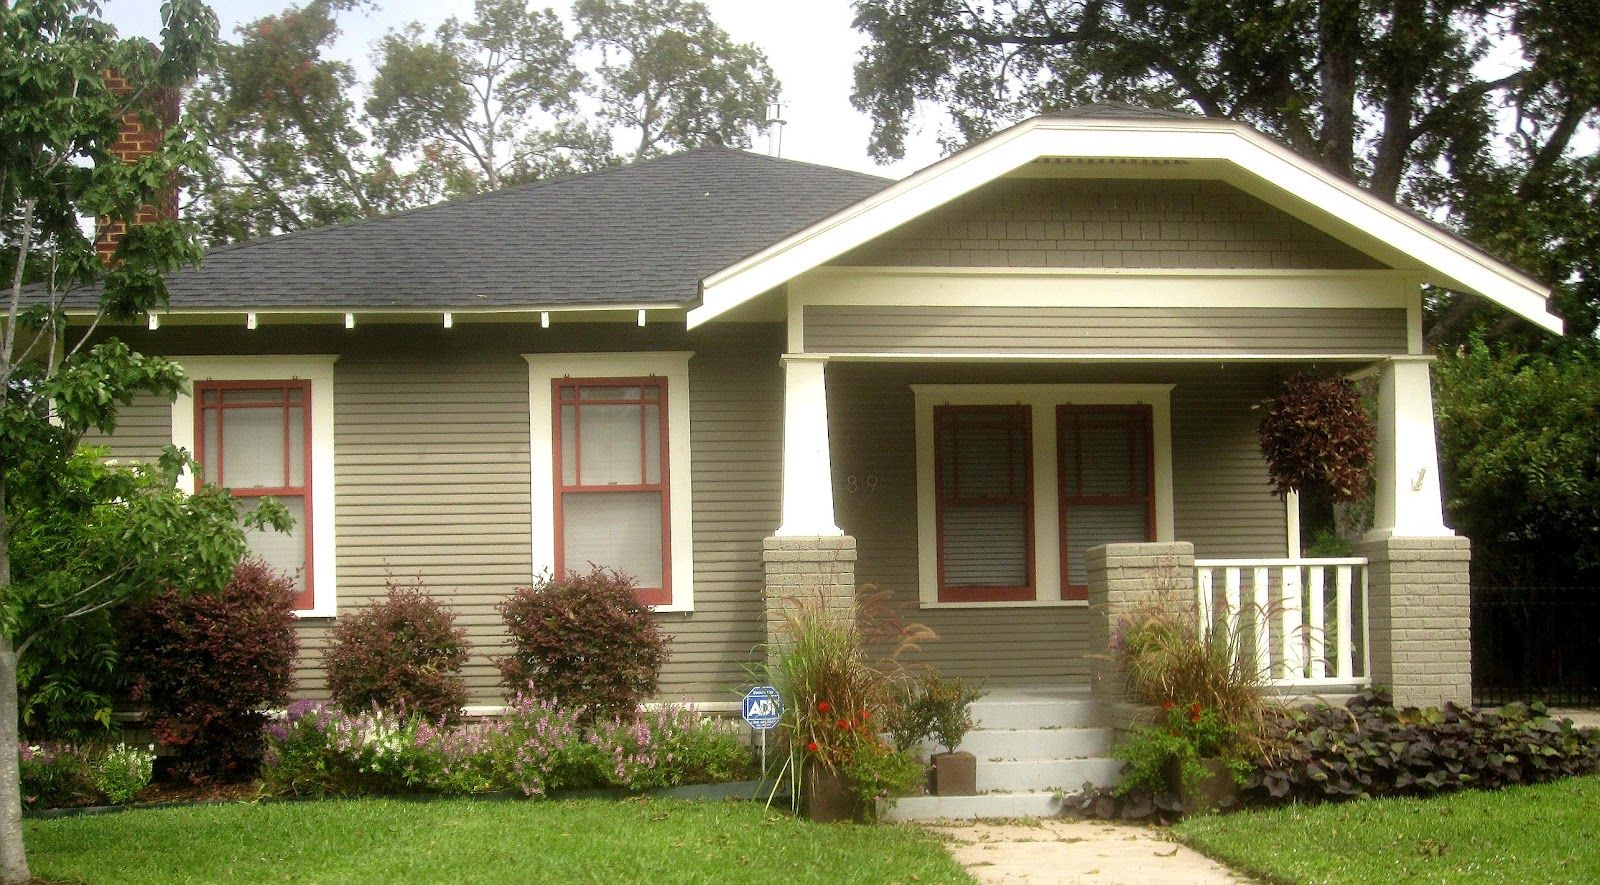 The Other Houston Bungalows In The Norhill Historic